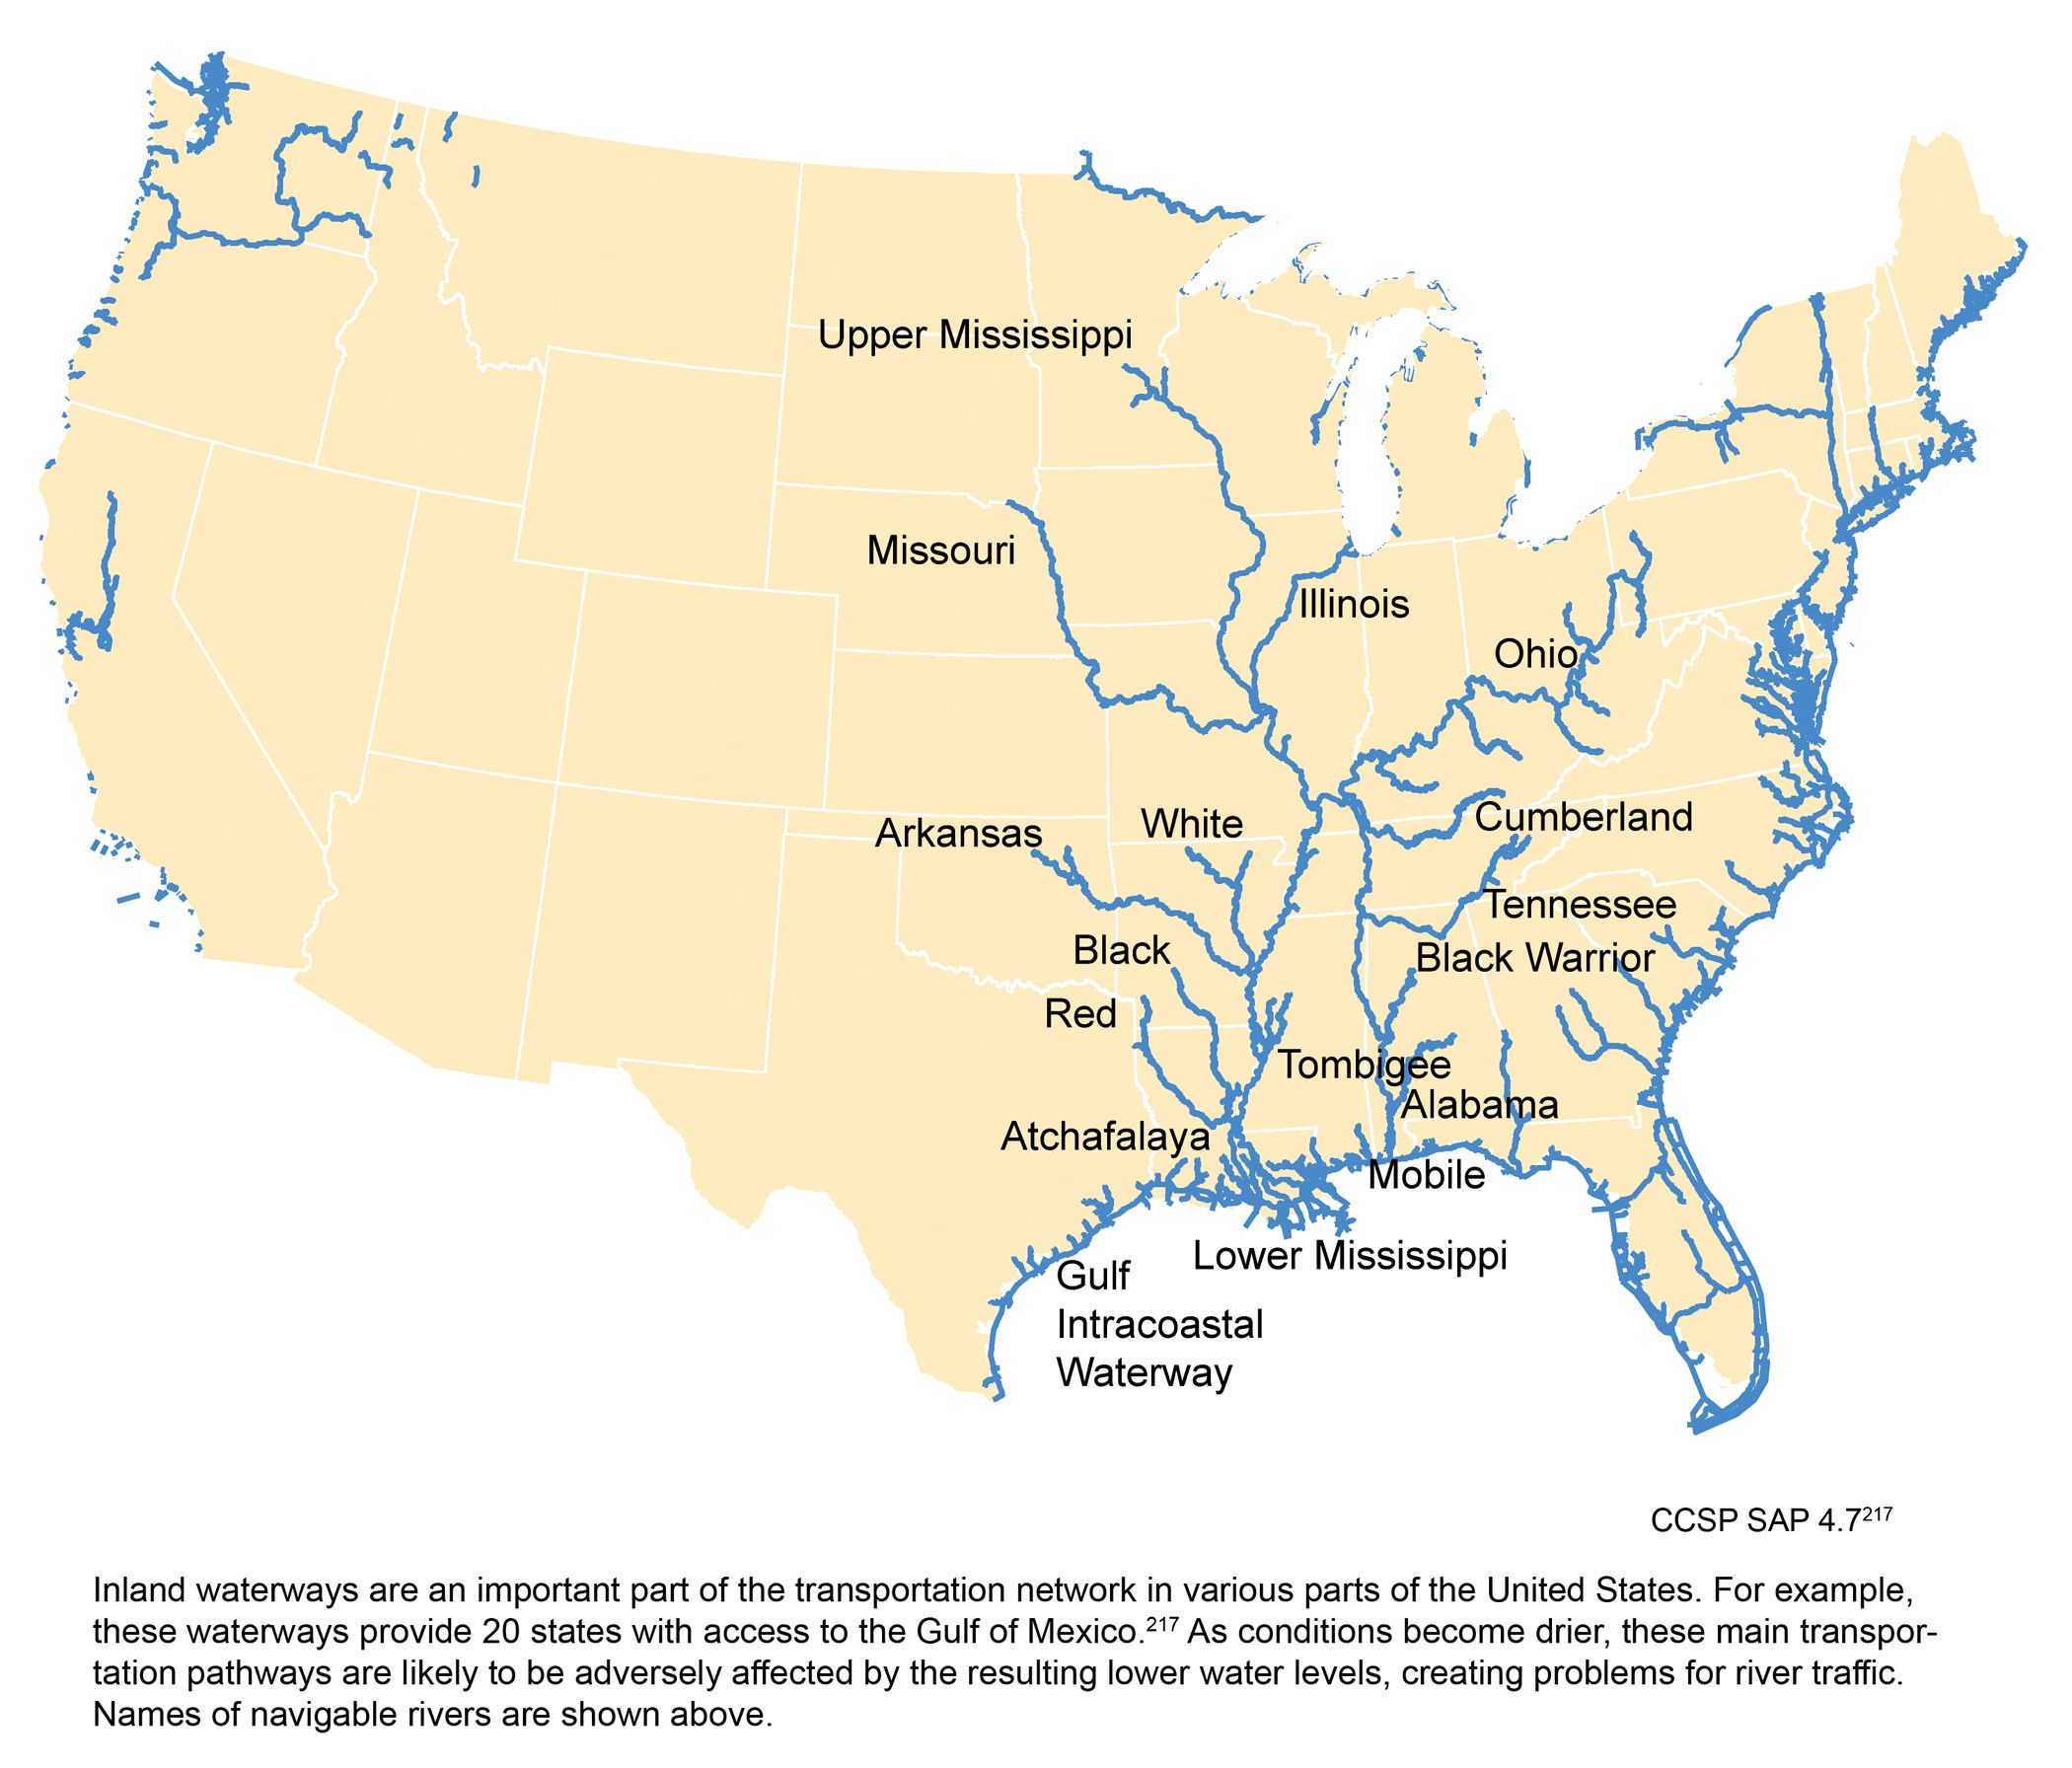 Inland waterways of the continental United States | MAP DATA ...